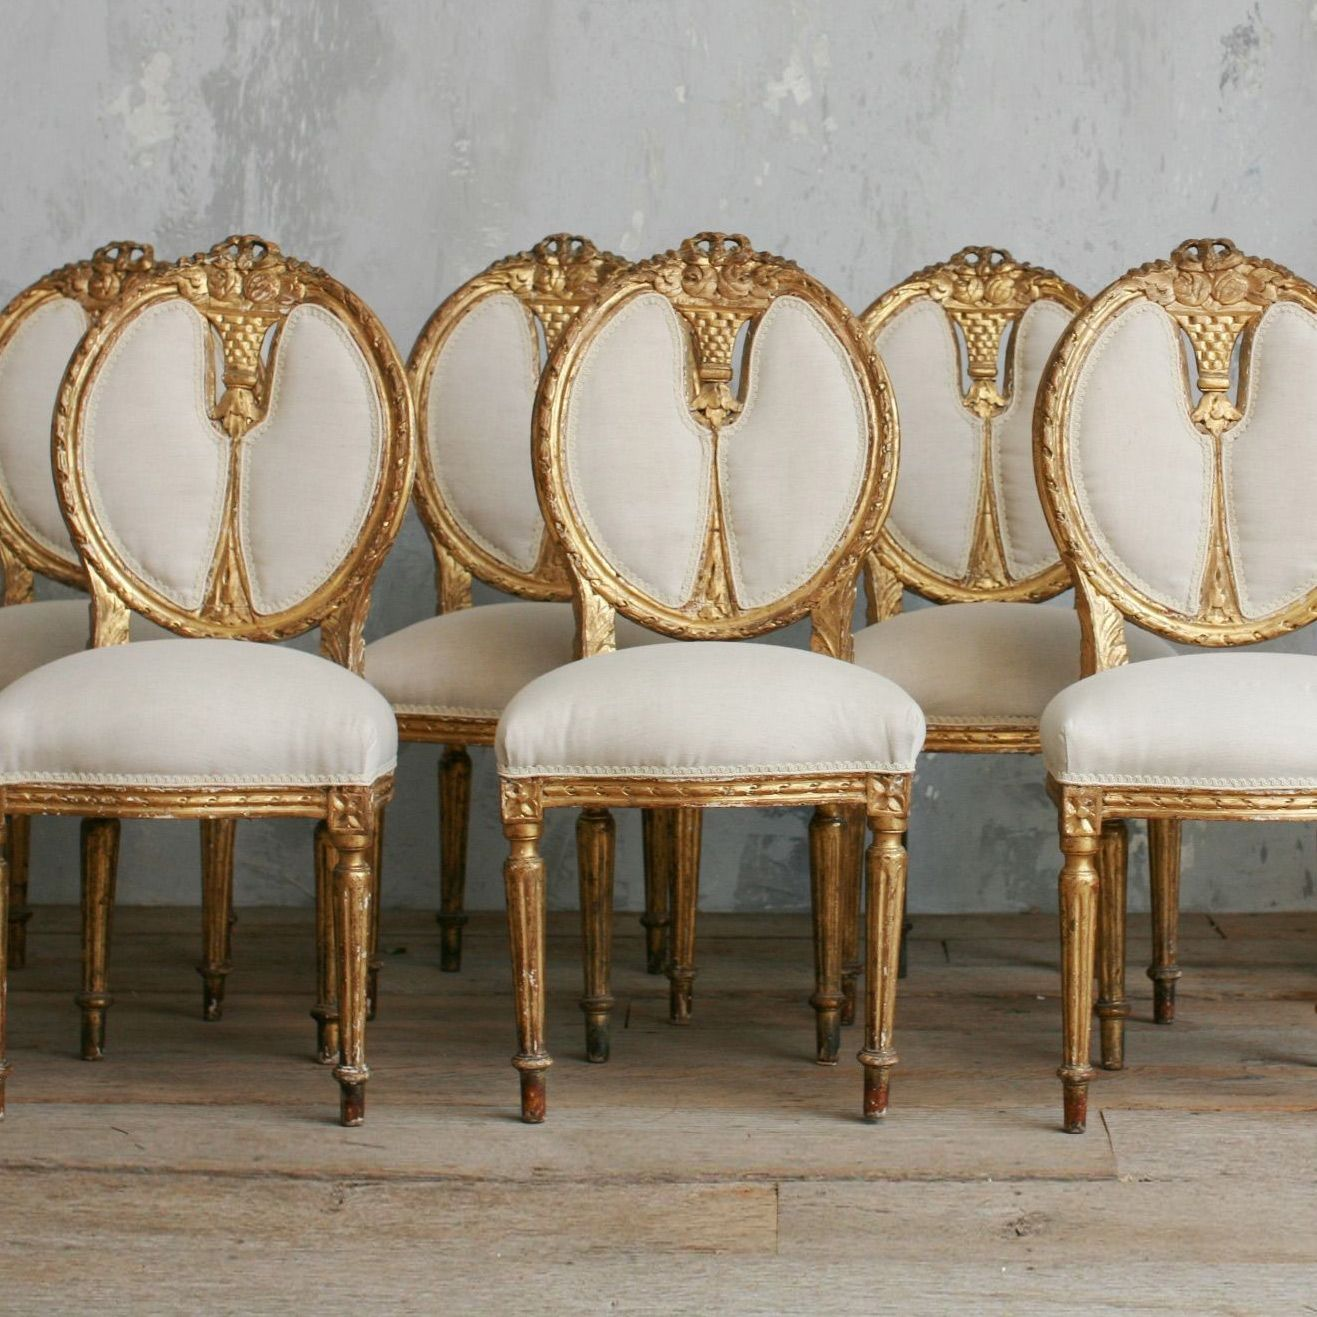 Antique French chairs from Layla Grace.